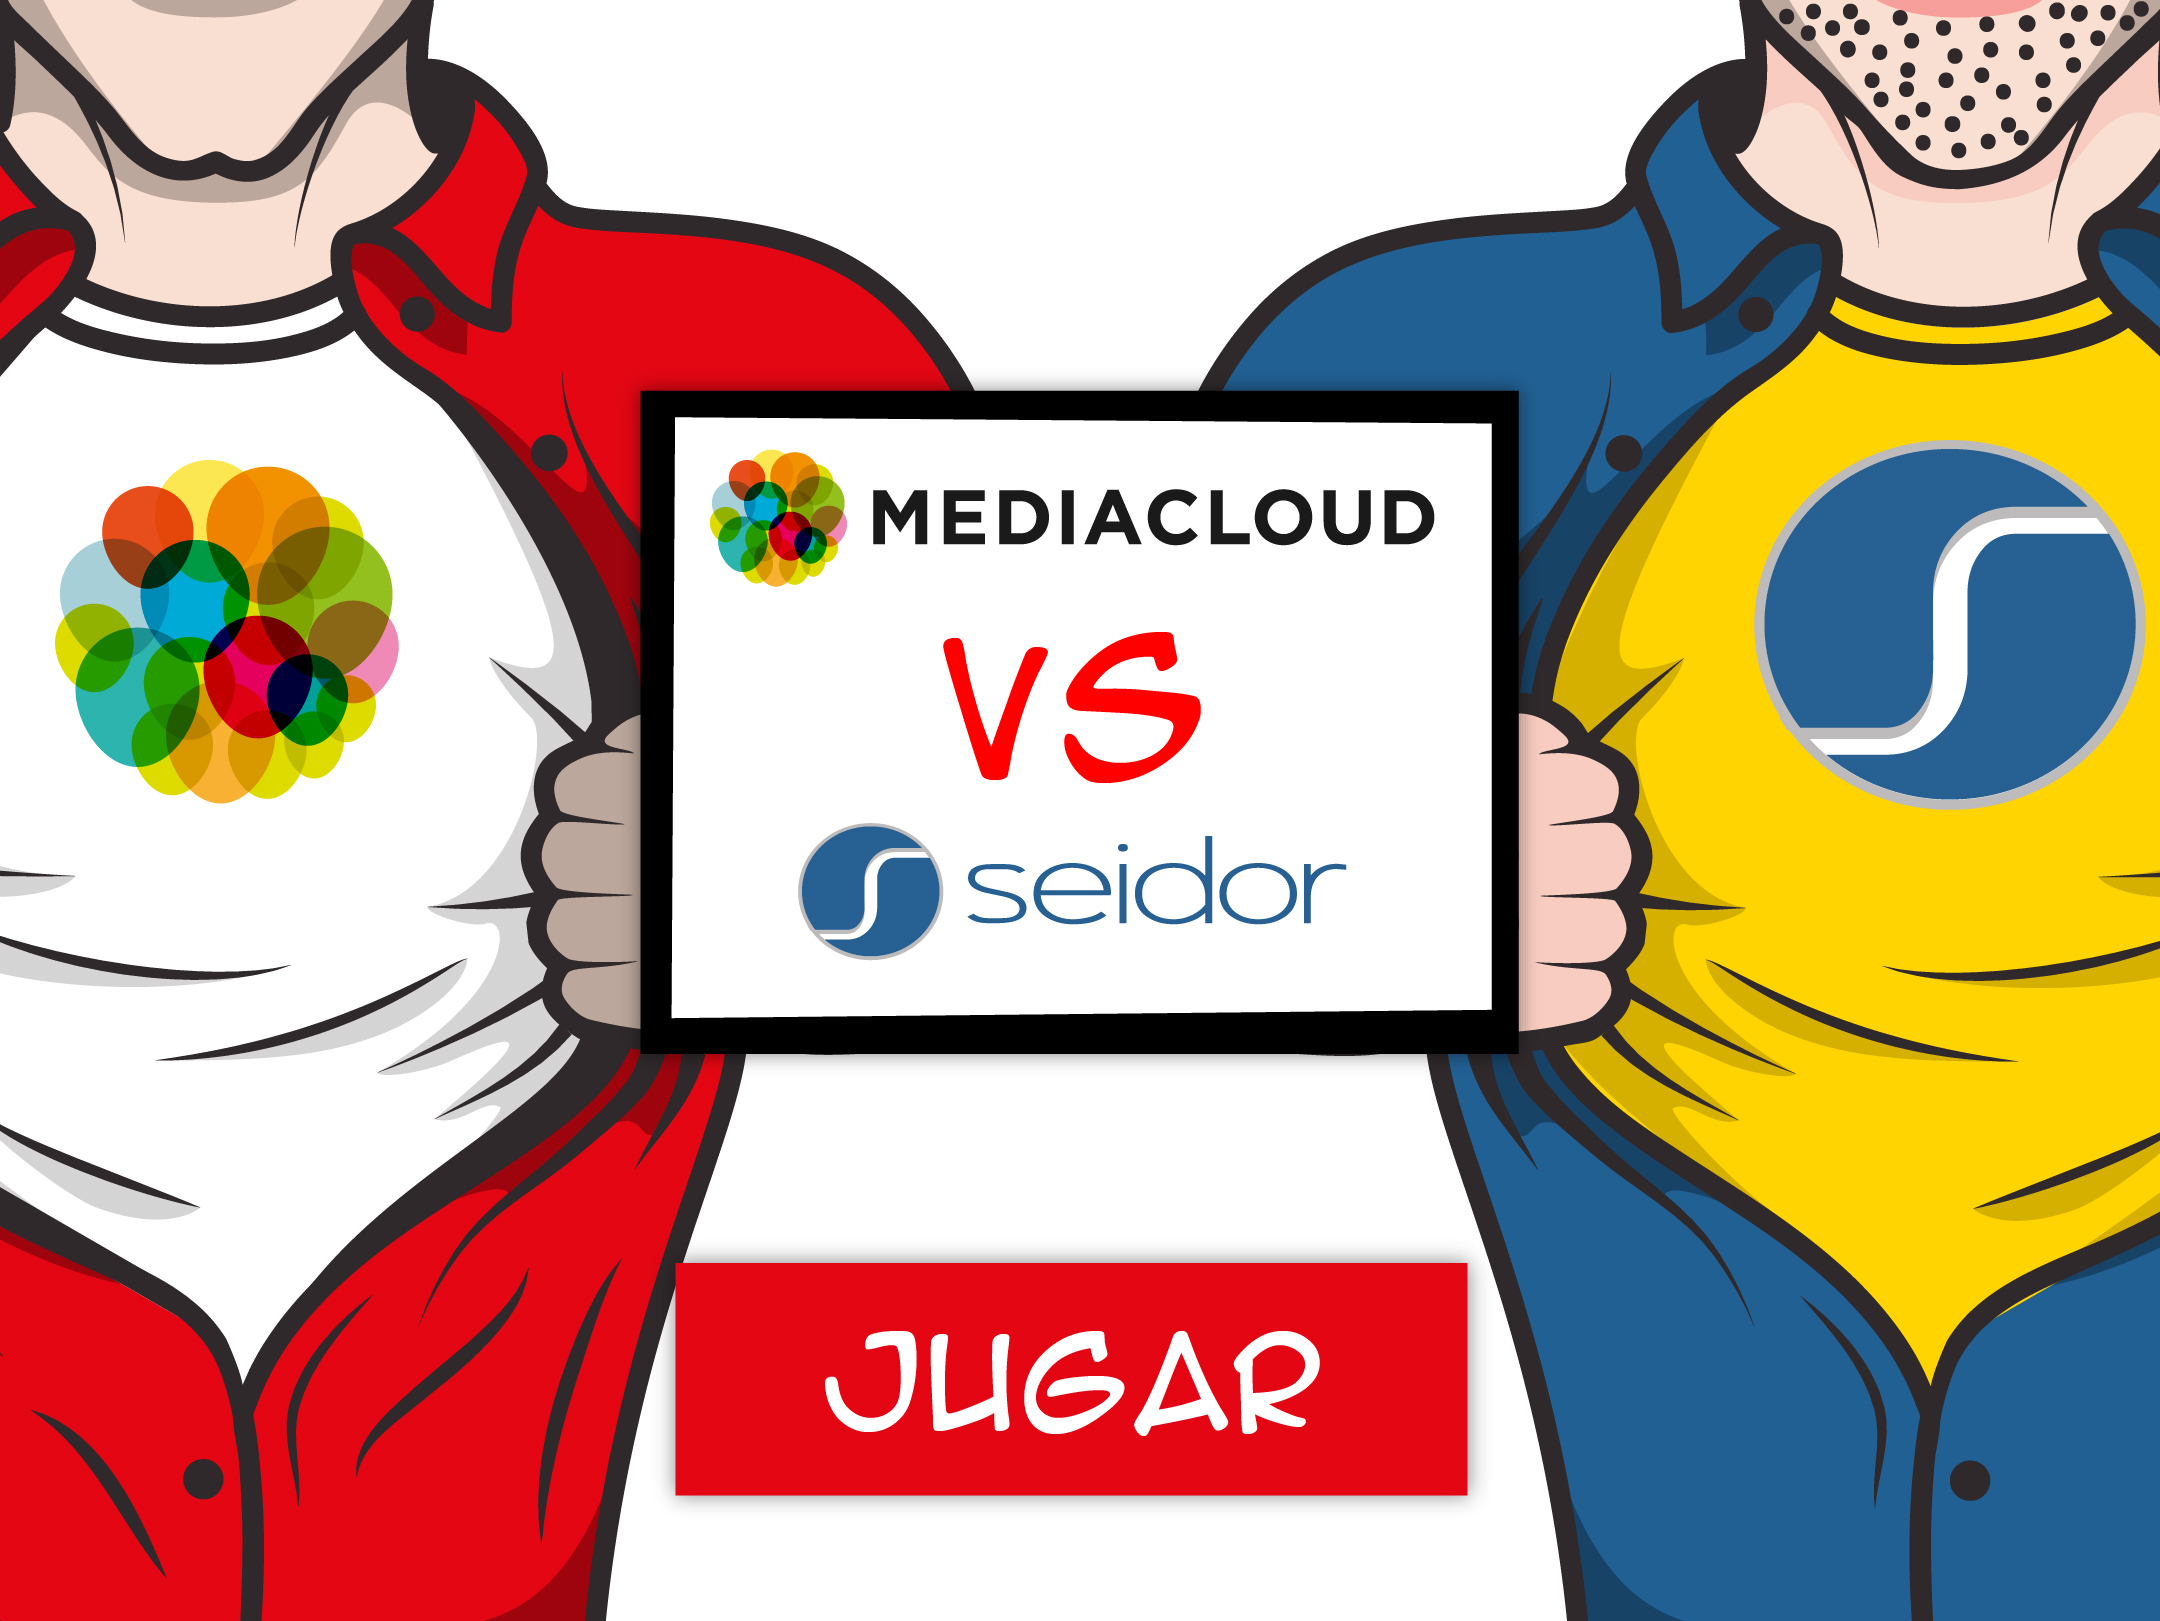 Mediacloud vs Seidor